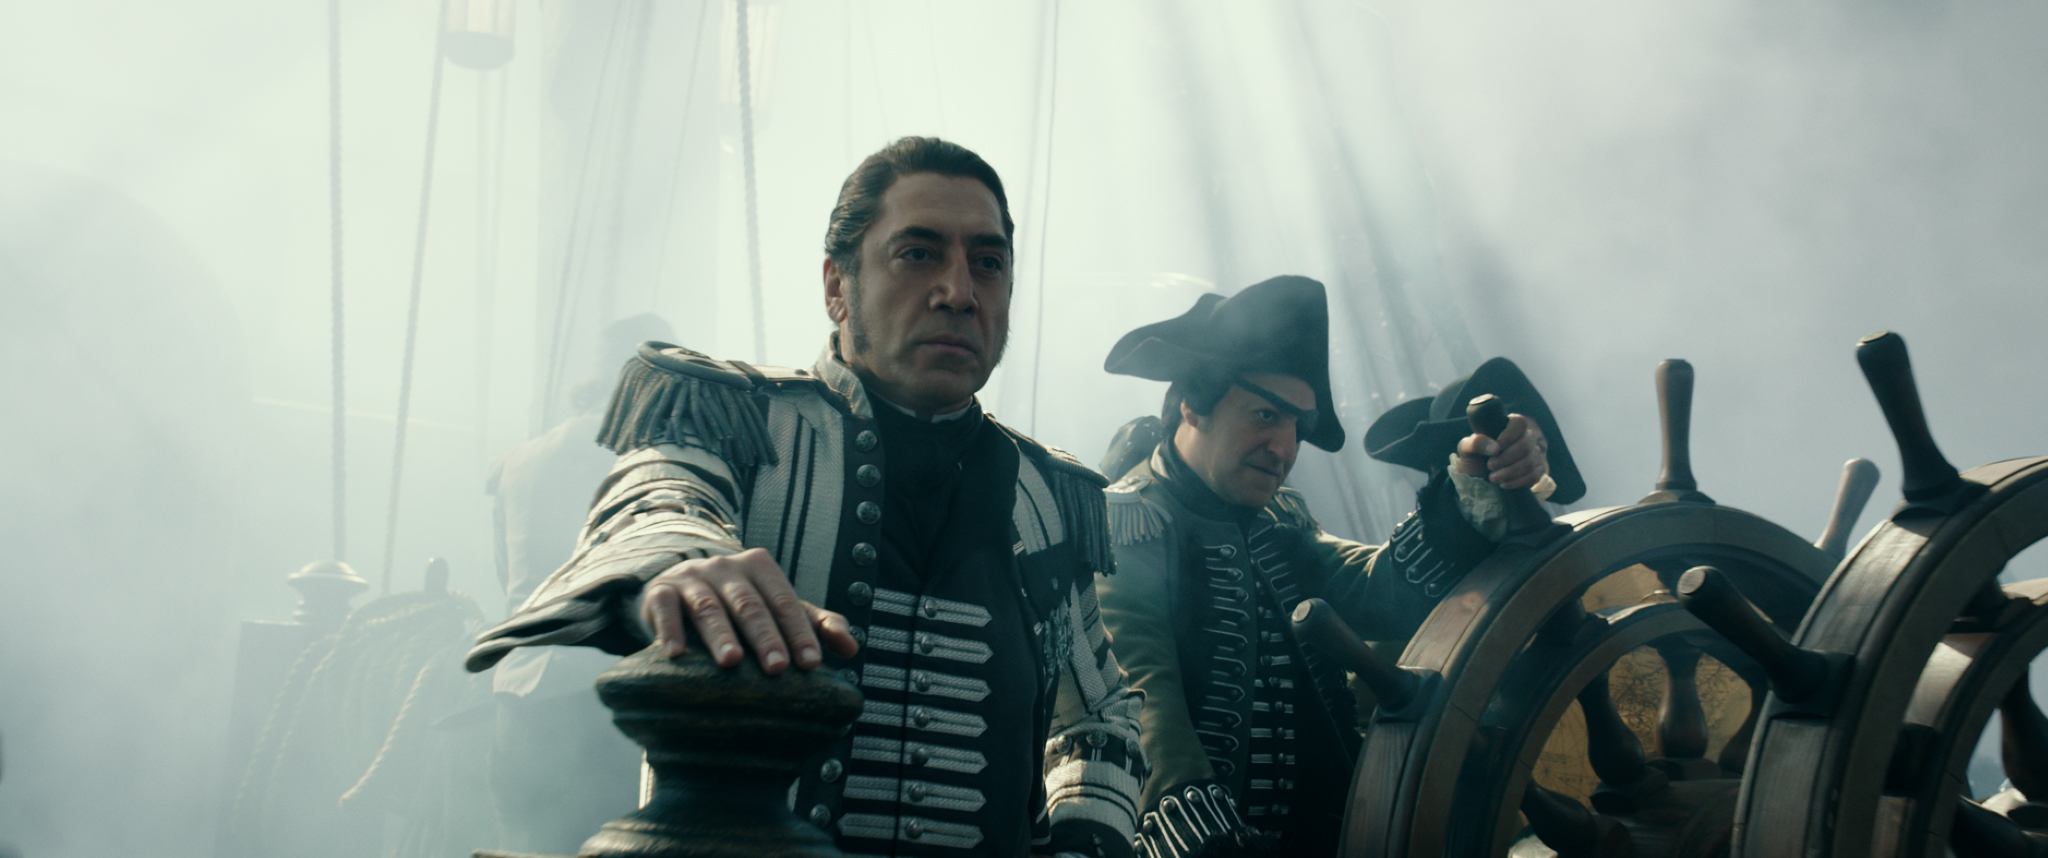 Exclusive Clip: Meet the Terrifying Villain Played by Javier Bardem in 'Pirates of the Caribbean: Dead Men Tell No Tales'